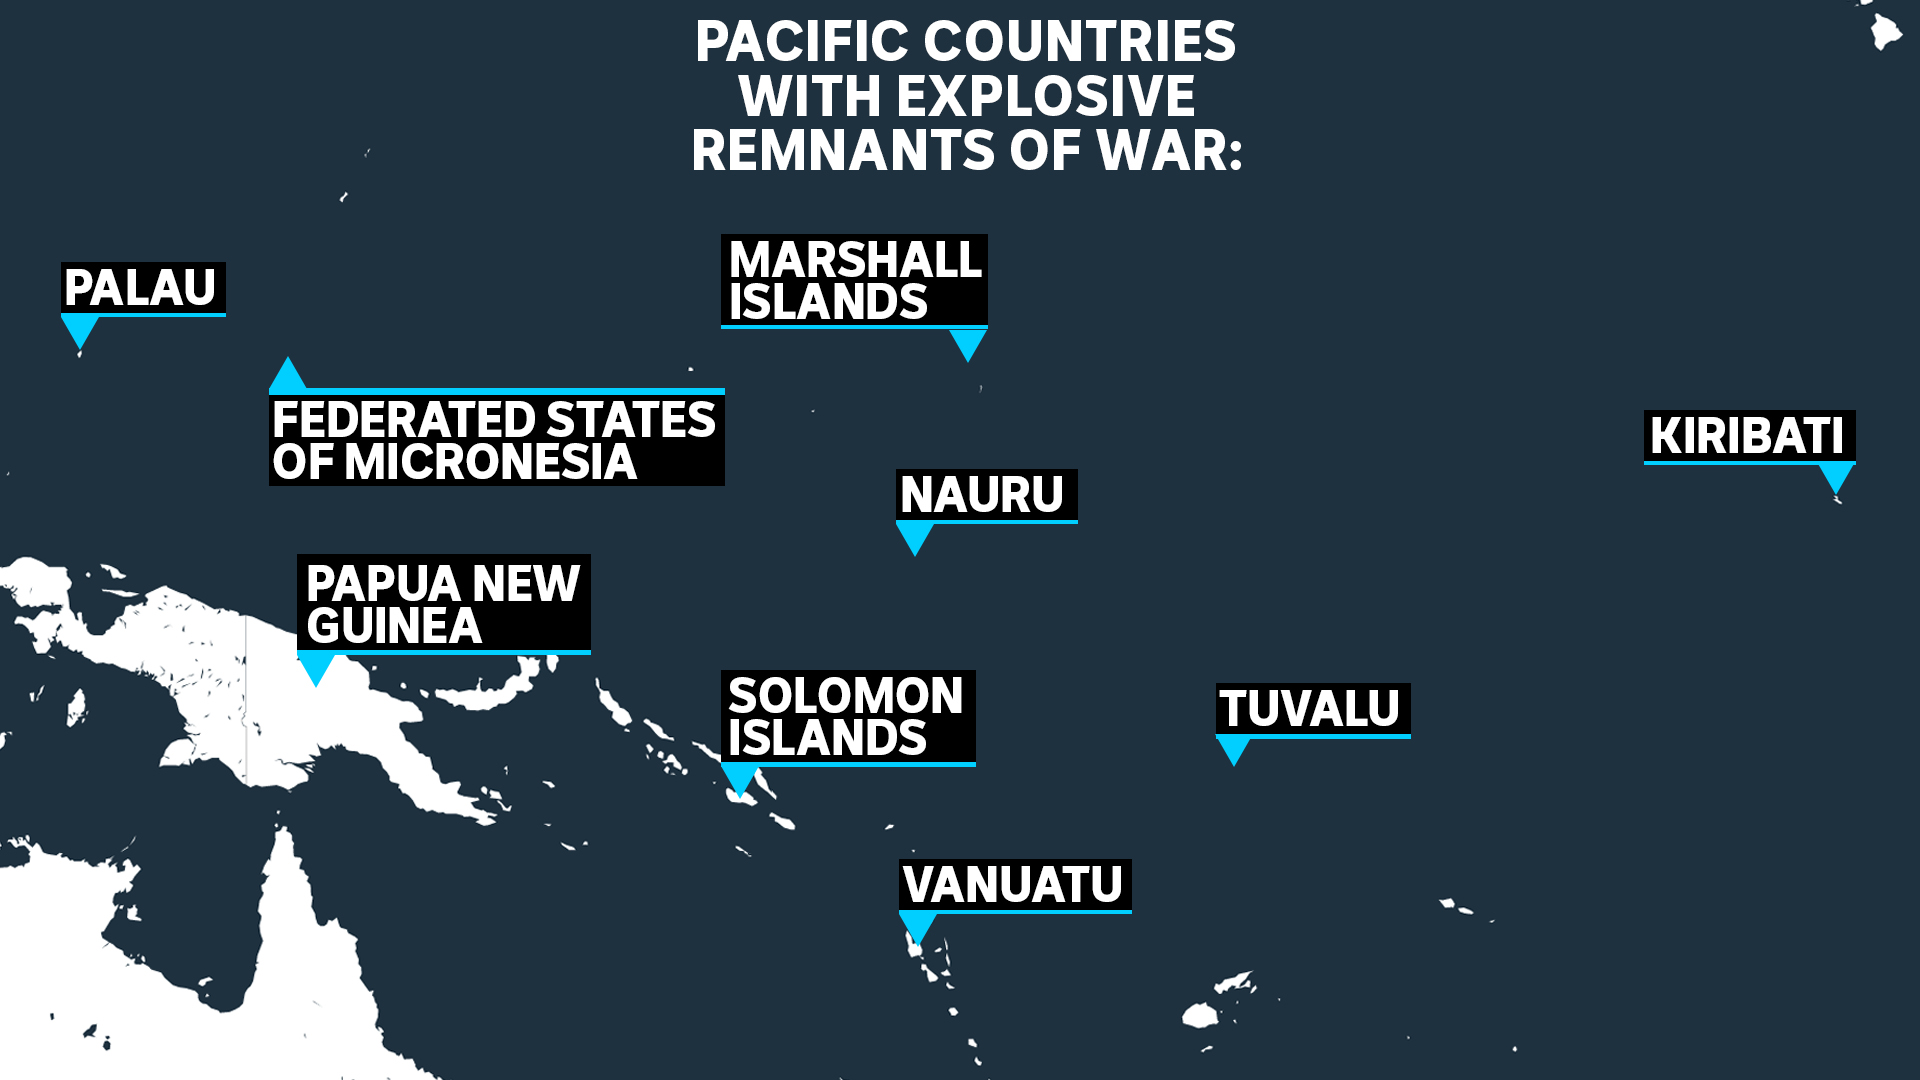 Map of Pacific countries with explosive remnants of war